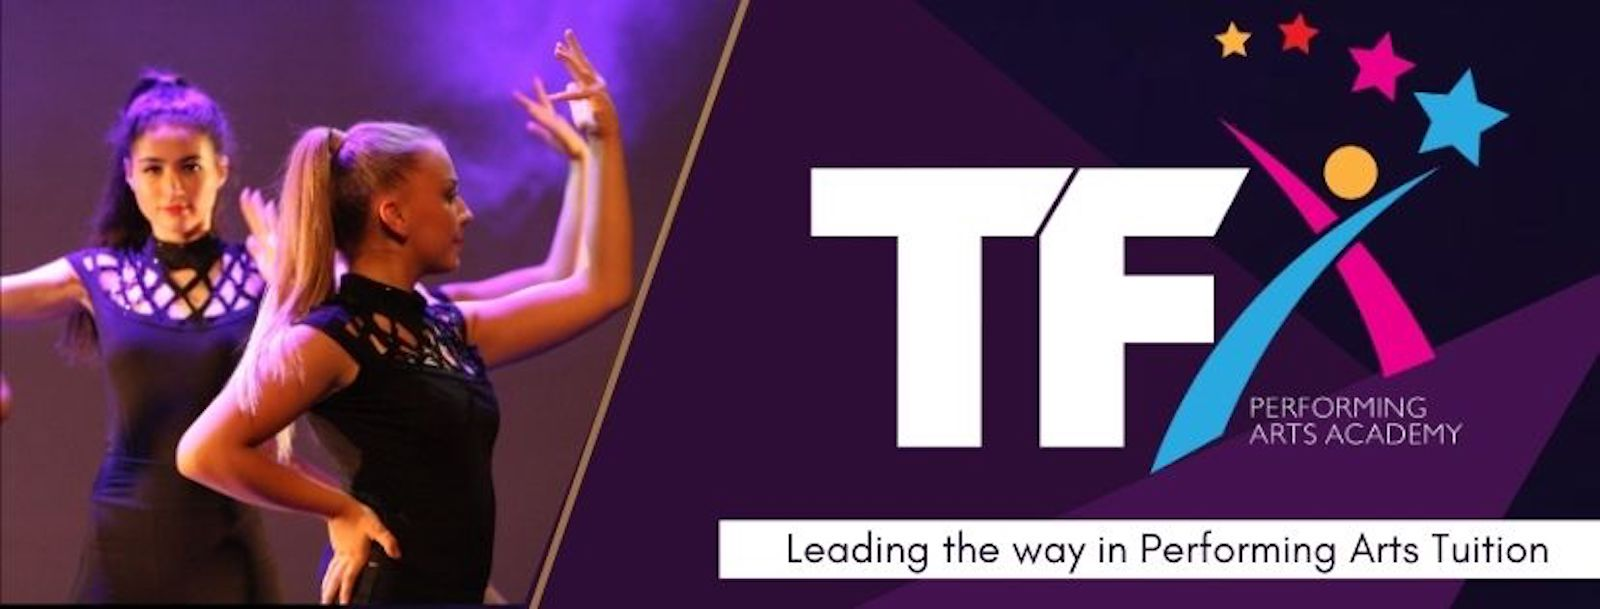 TFX Performing Arts Academy